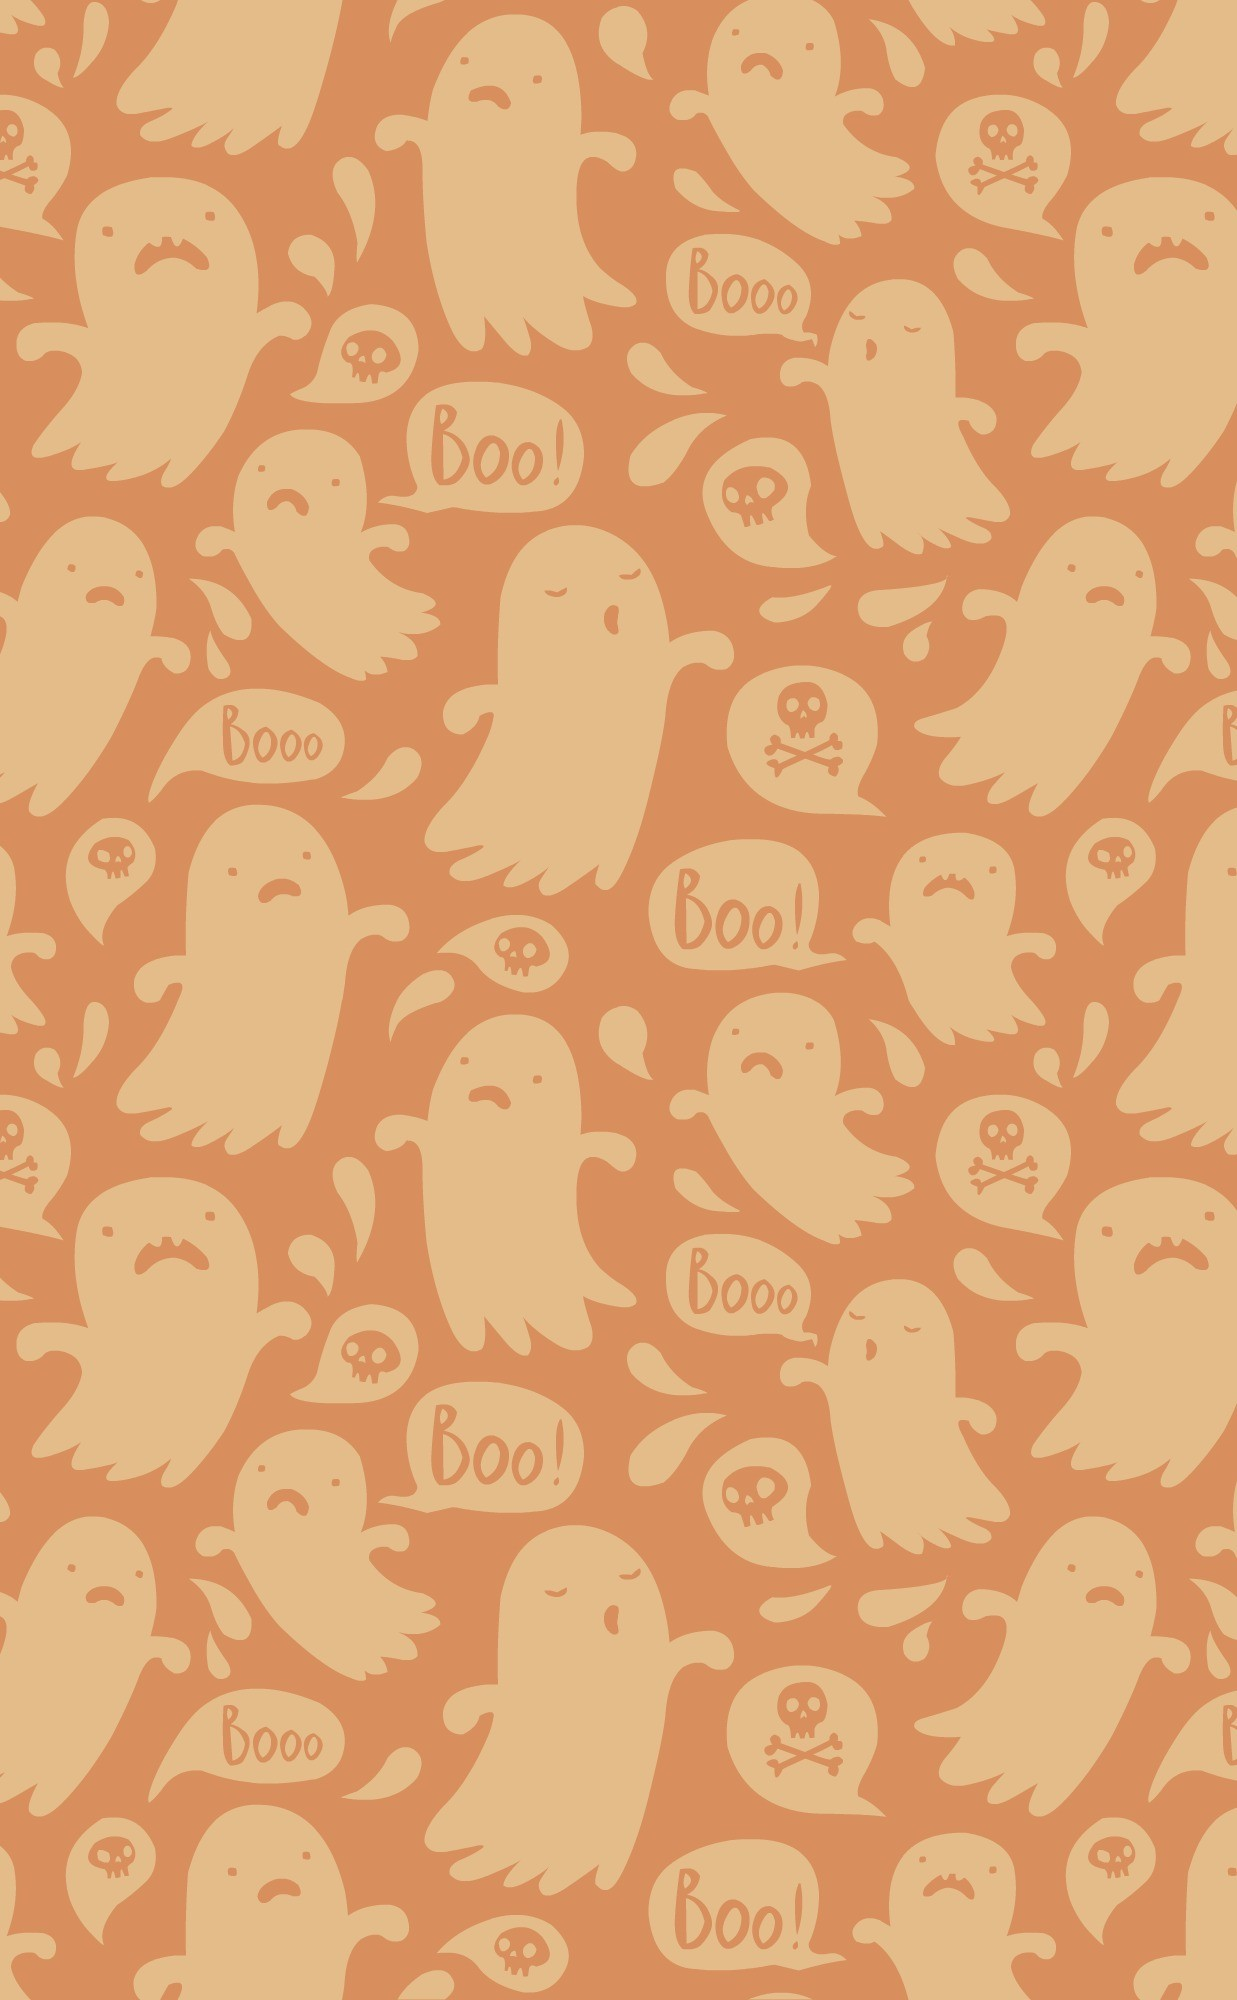 Halloween Wallpaper Tumblr.Cute Halloween Iphone Wallpaper 81 Images